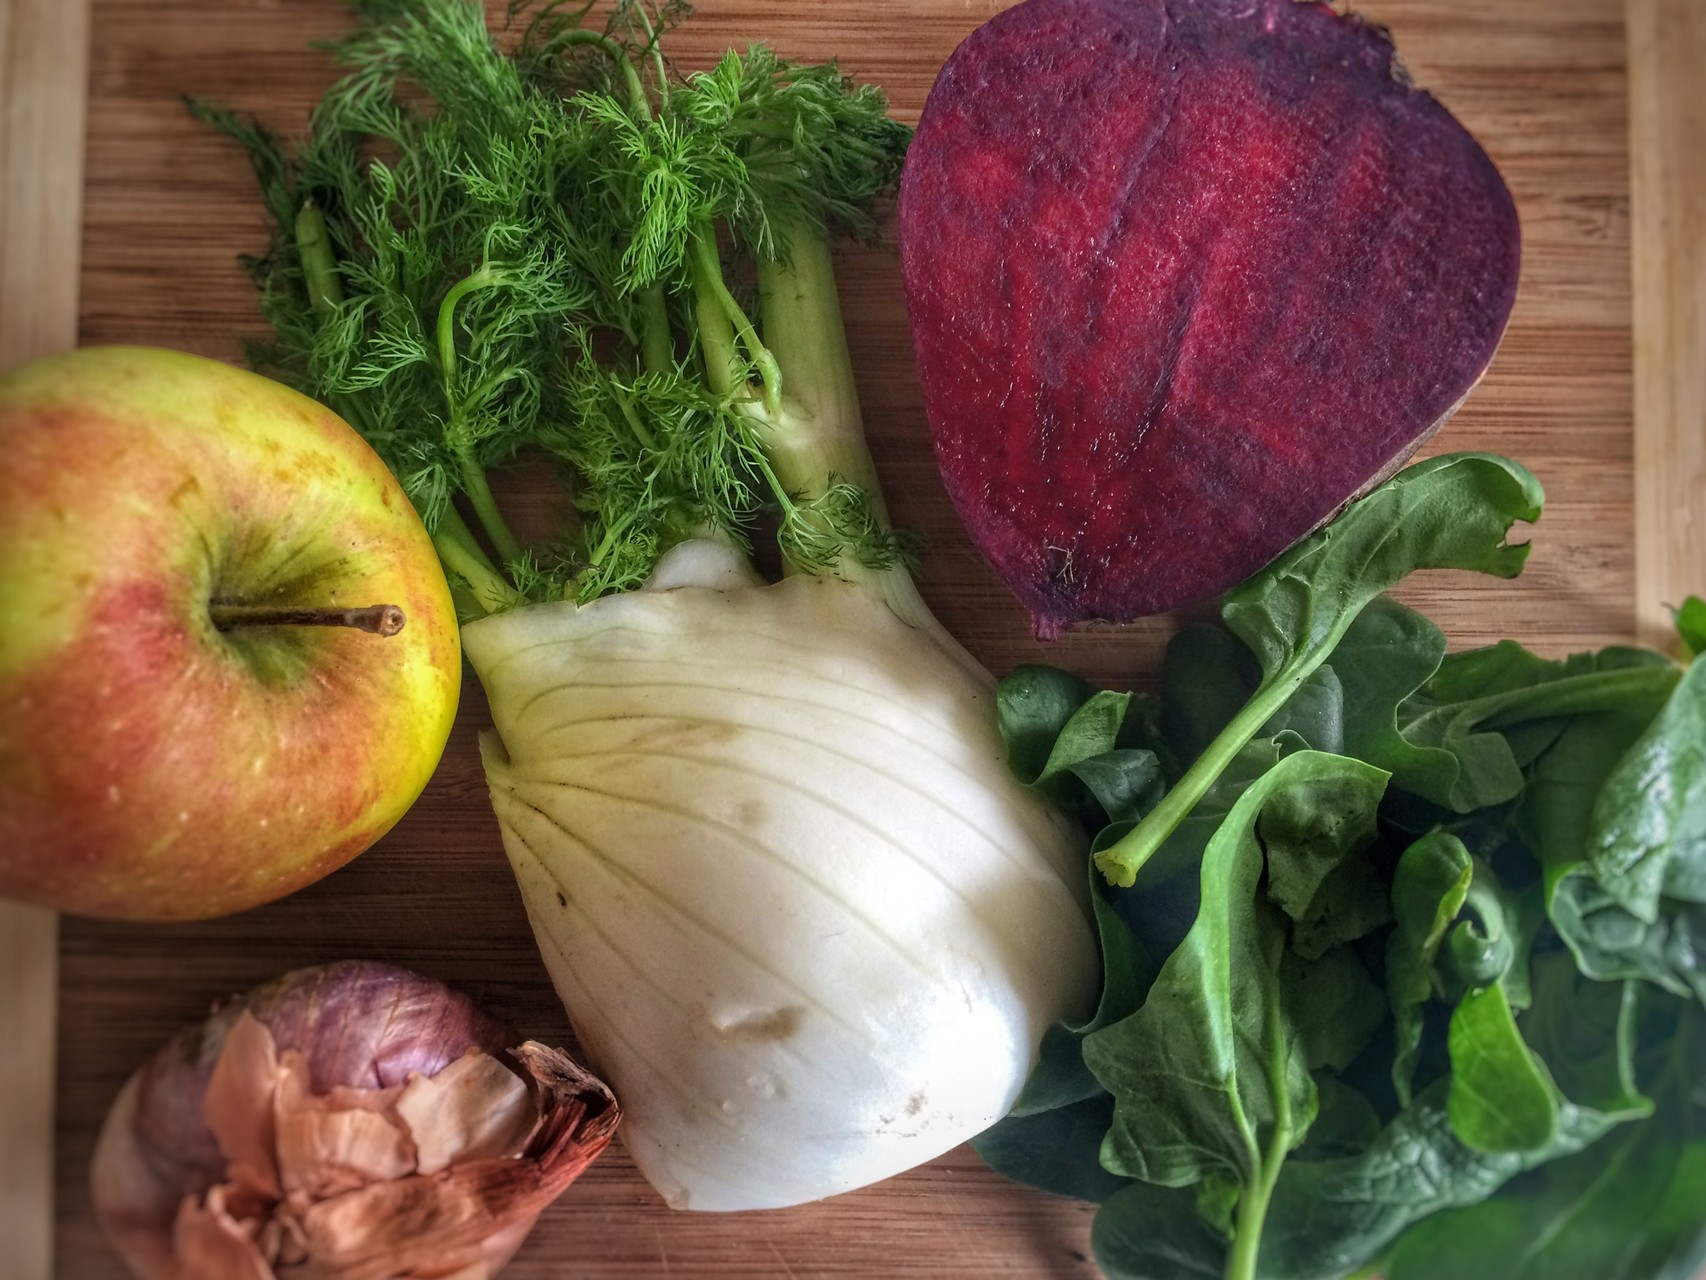 Beetroot, fennel, apple, spinach - mycleanlife